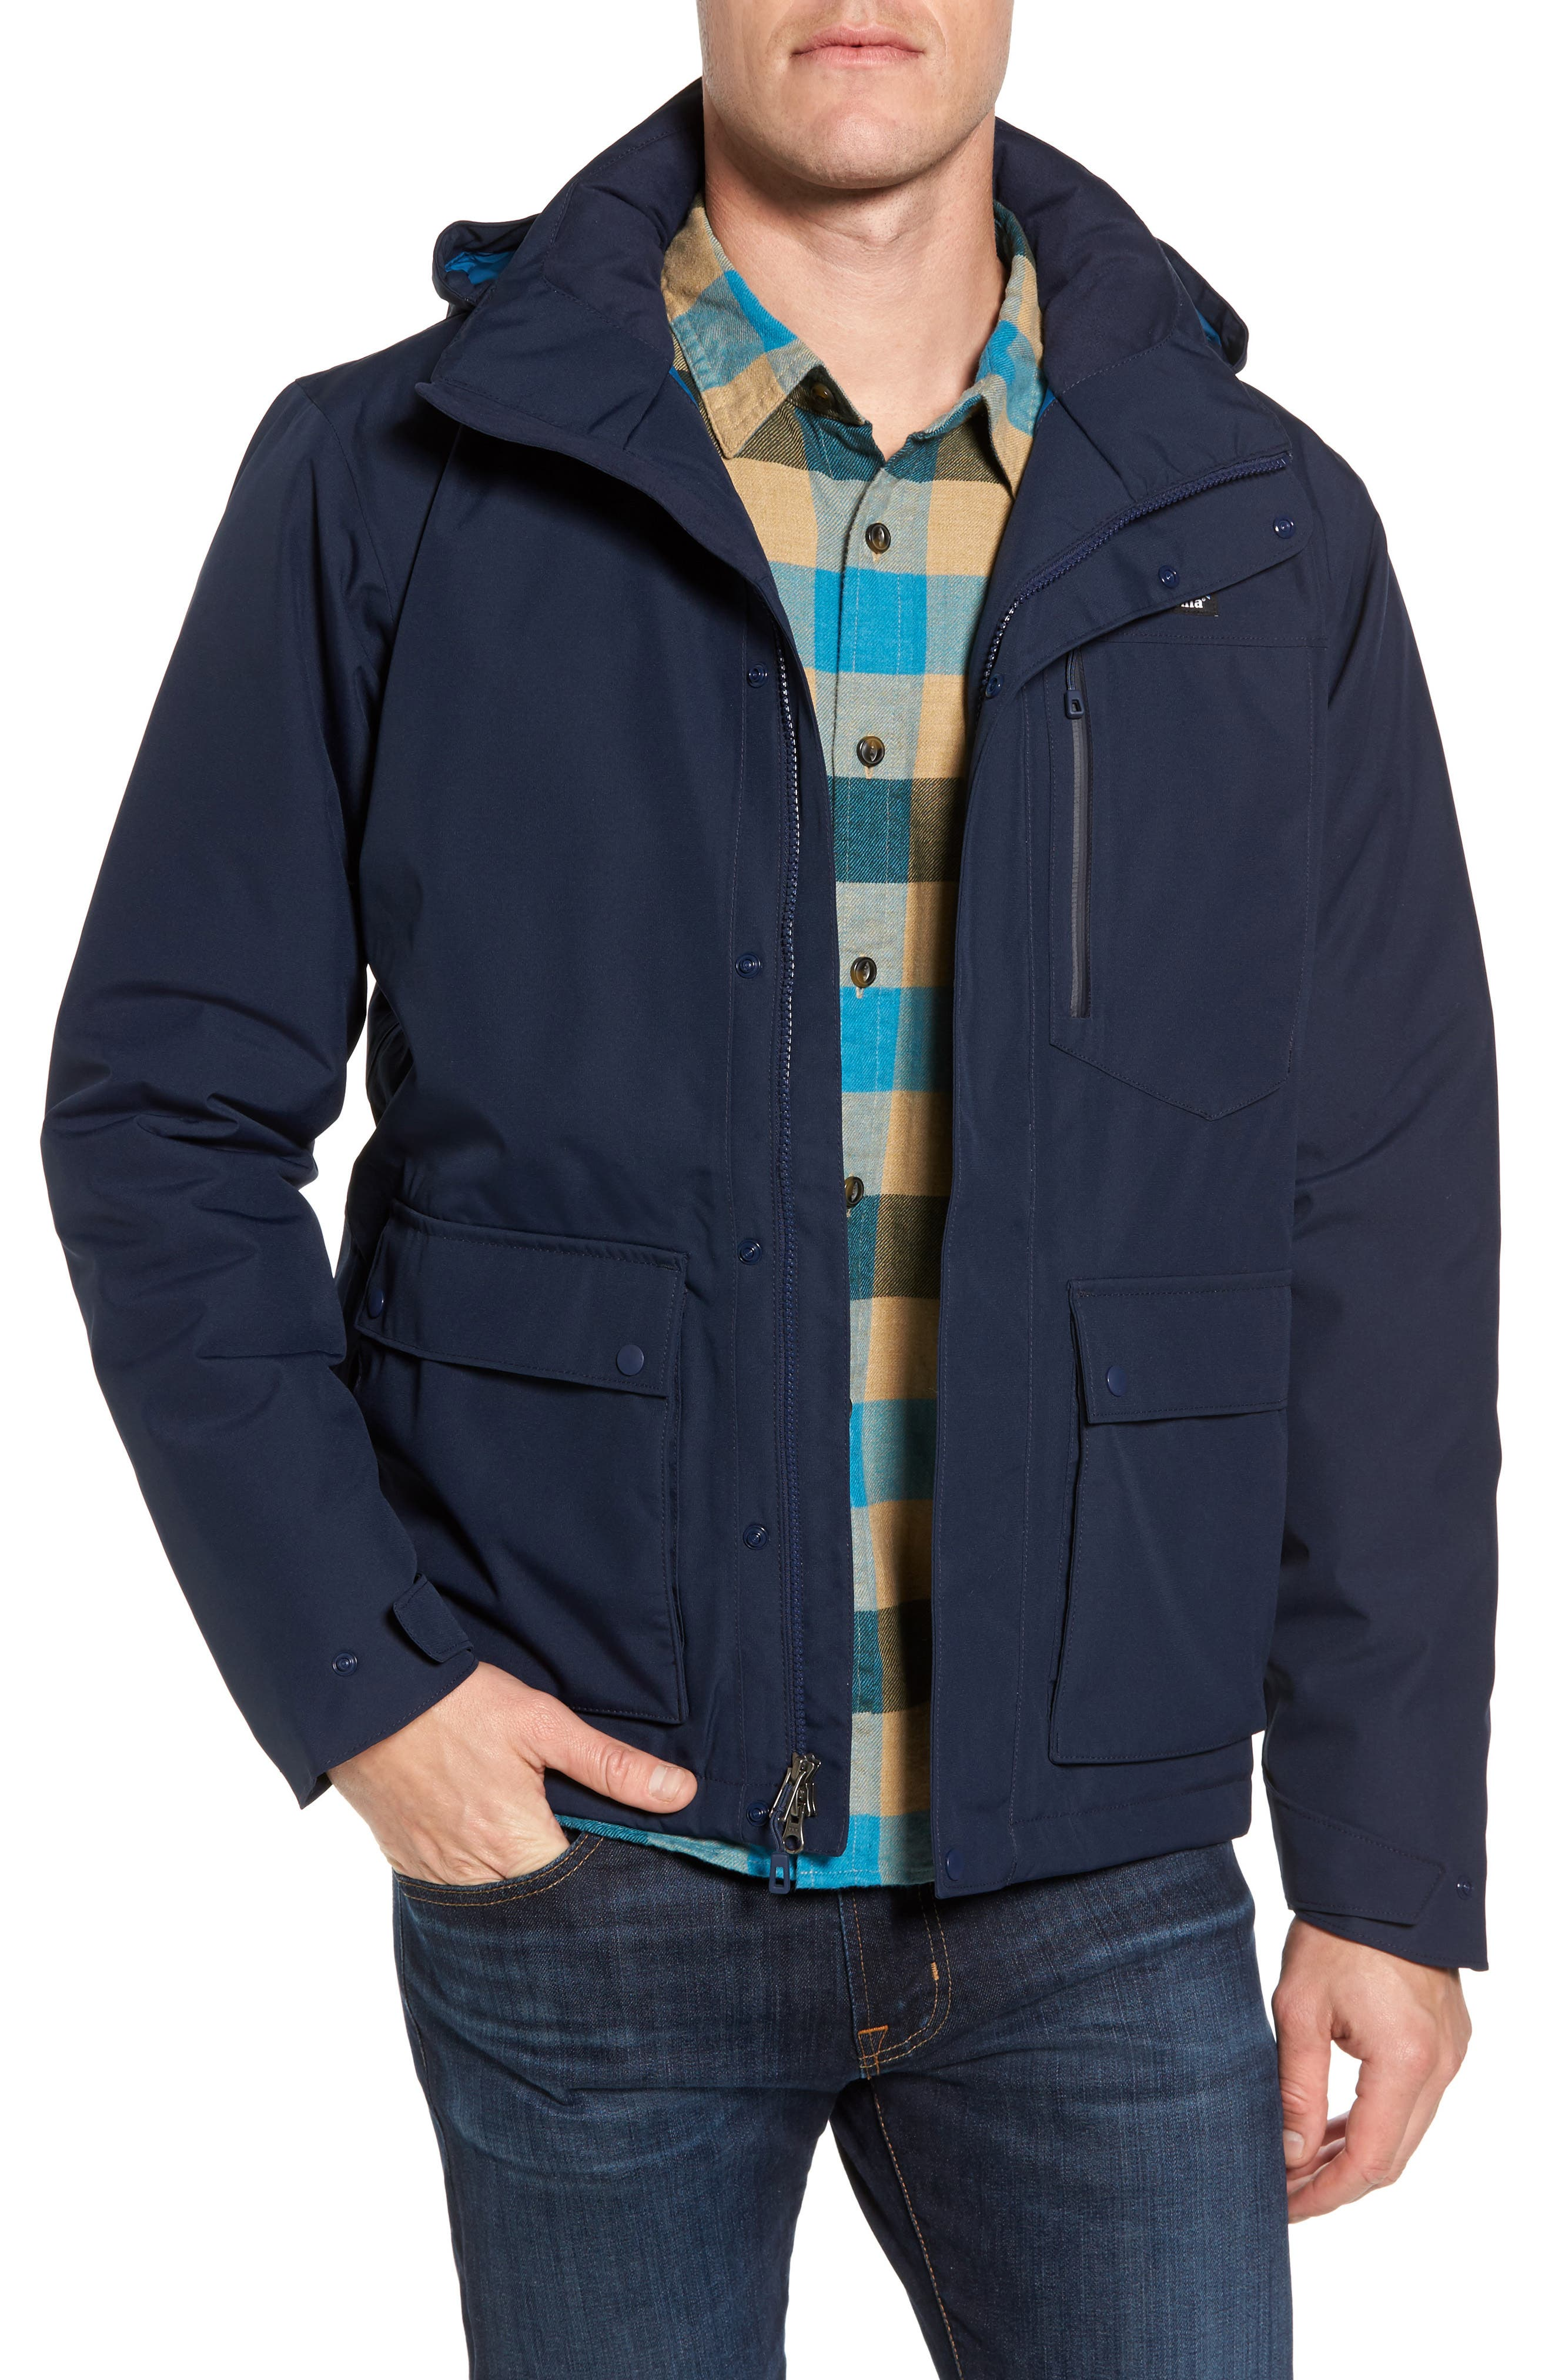 Topley Waterproof Jacket,                         Main,                         color, Navy Blue